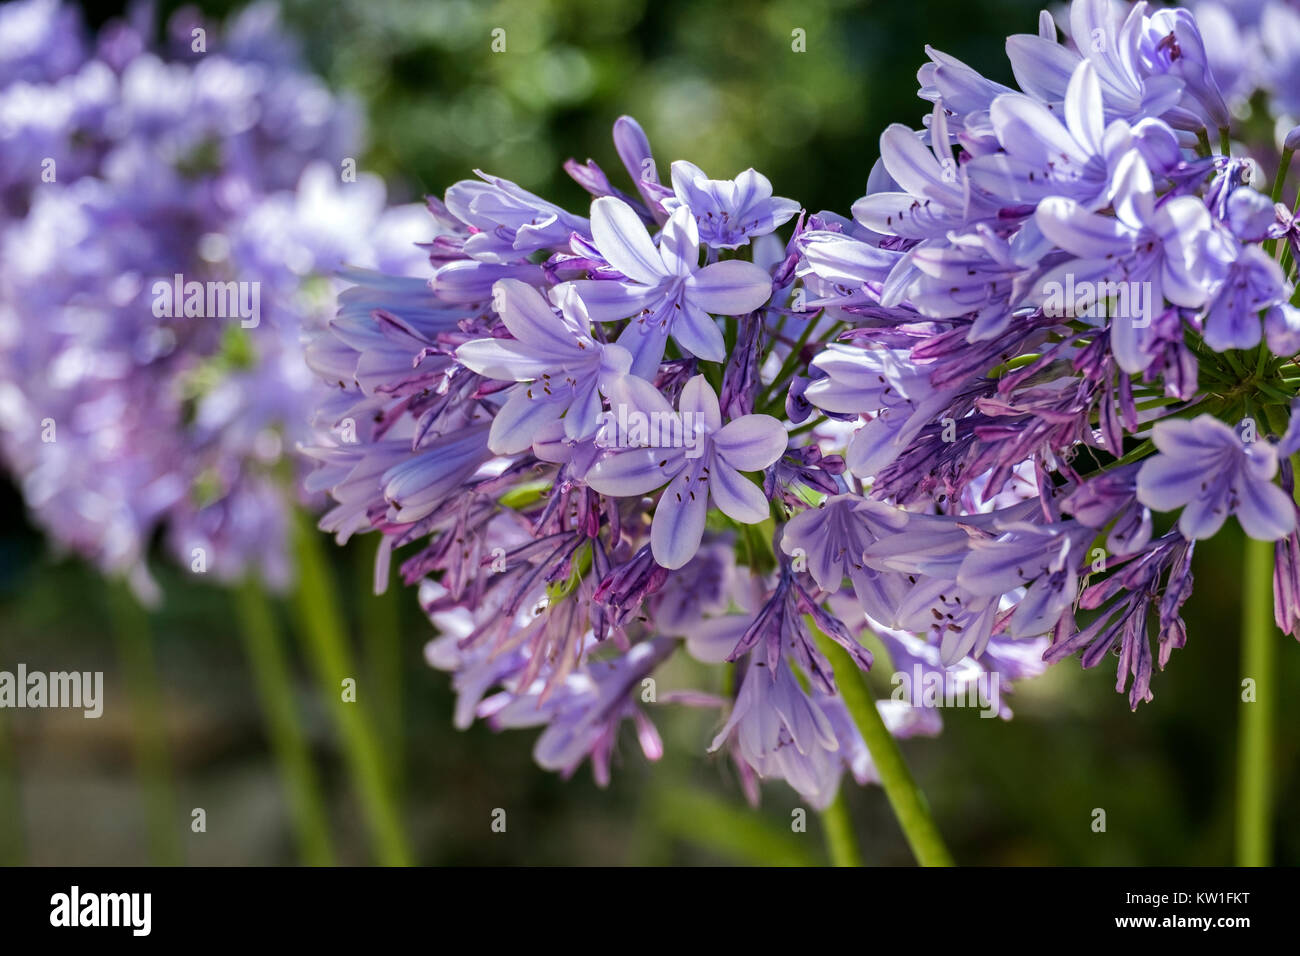 Lilac garden flowers with a globular inflorescence on a blurred background (Agapanthus africanus) - Stock Image